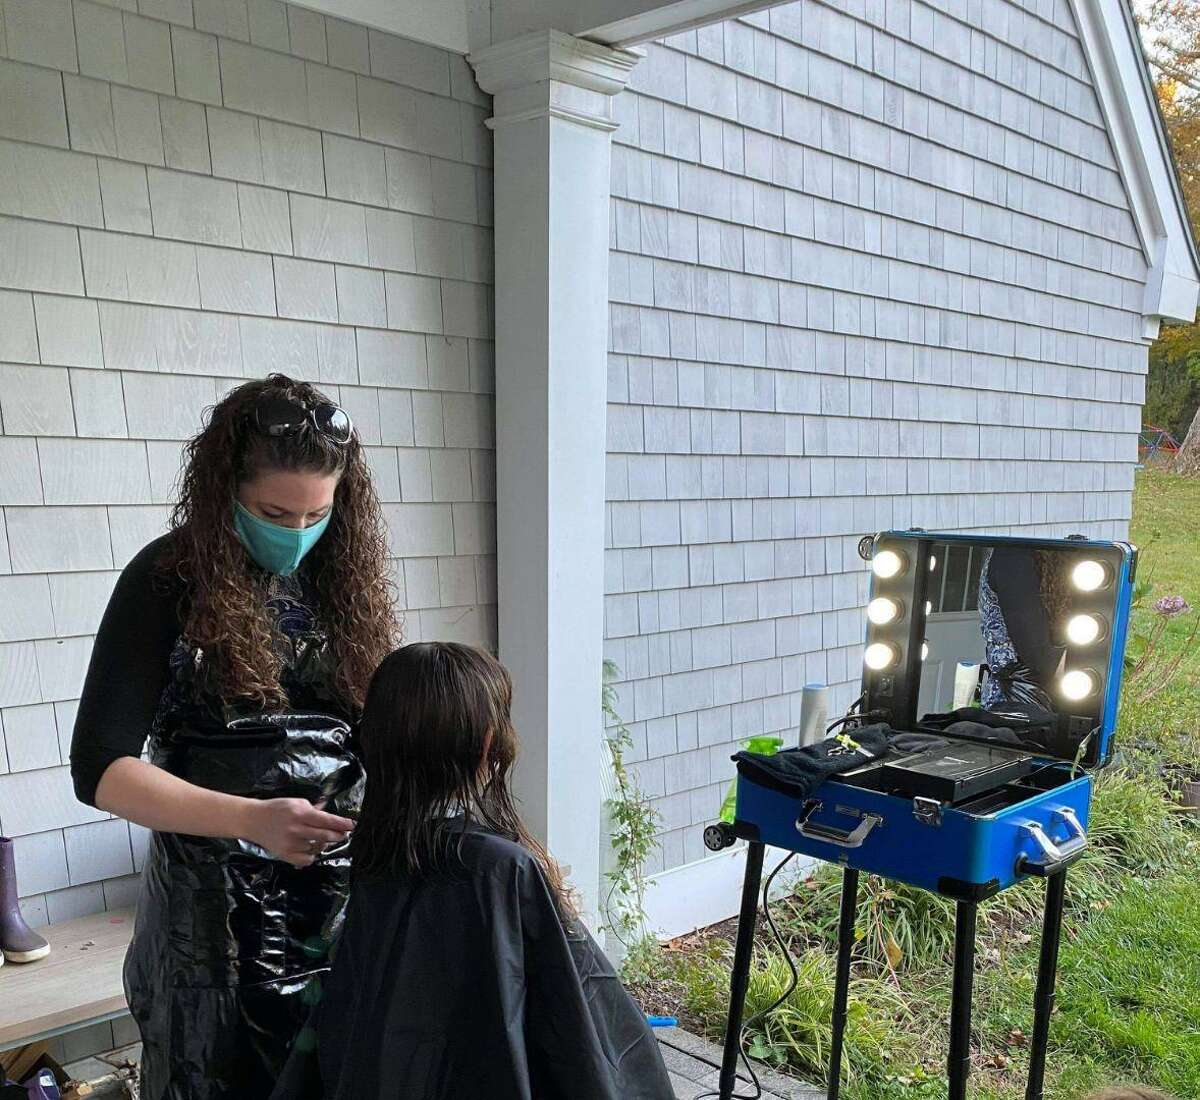 Chantel Pavlick brings hair styling services to clients at home with Salon En Root.